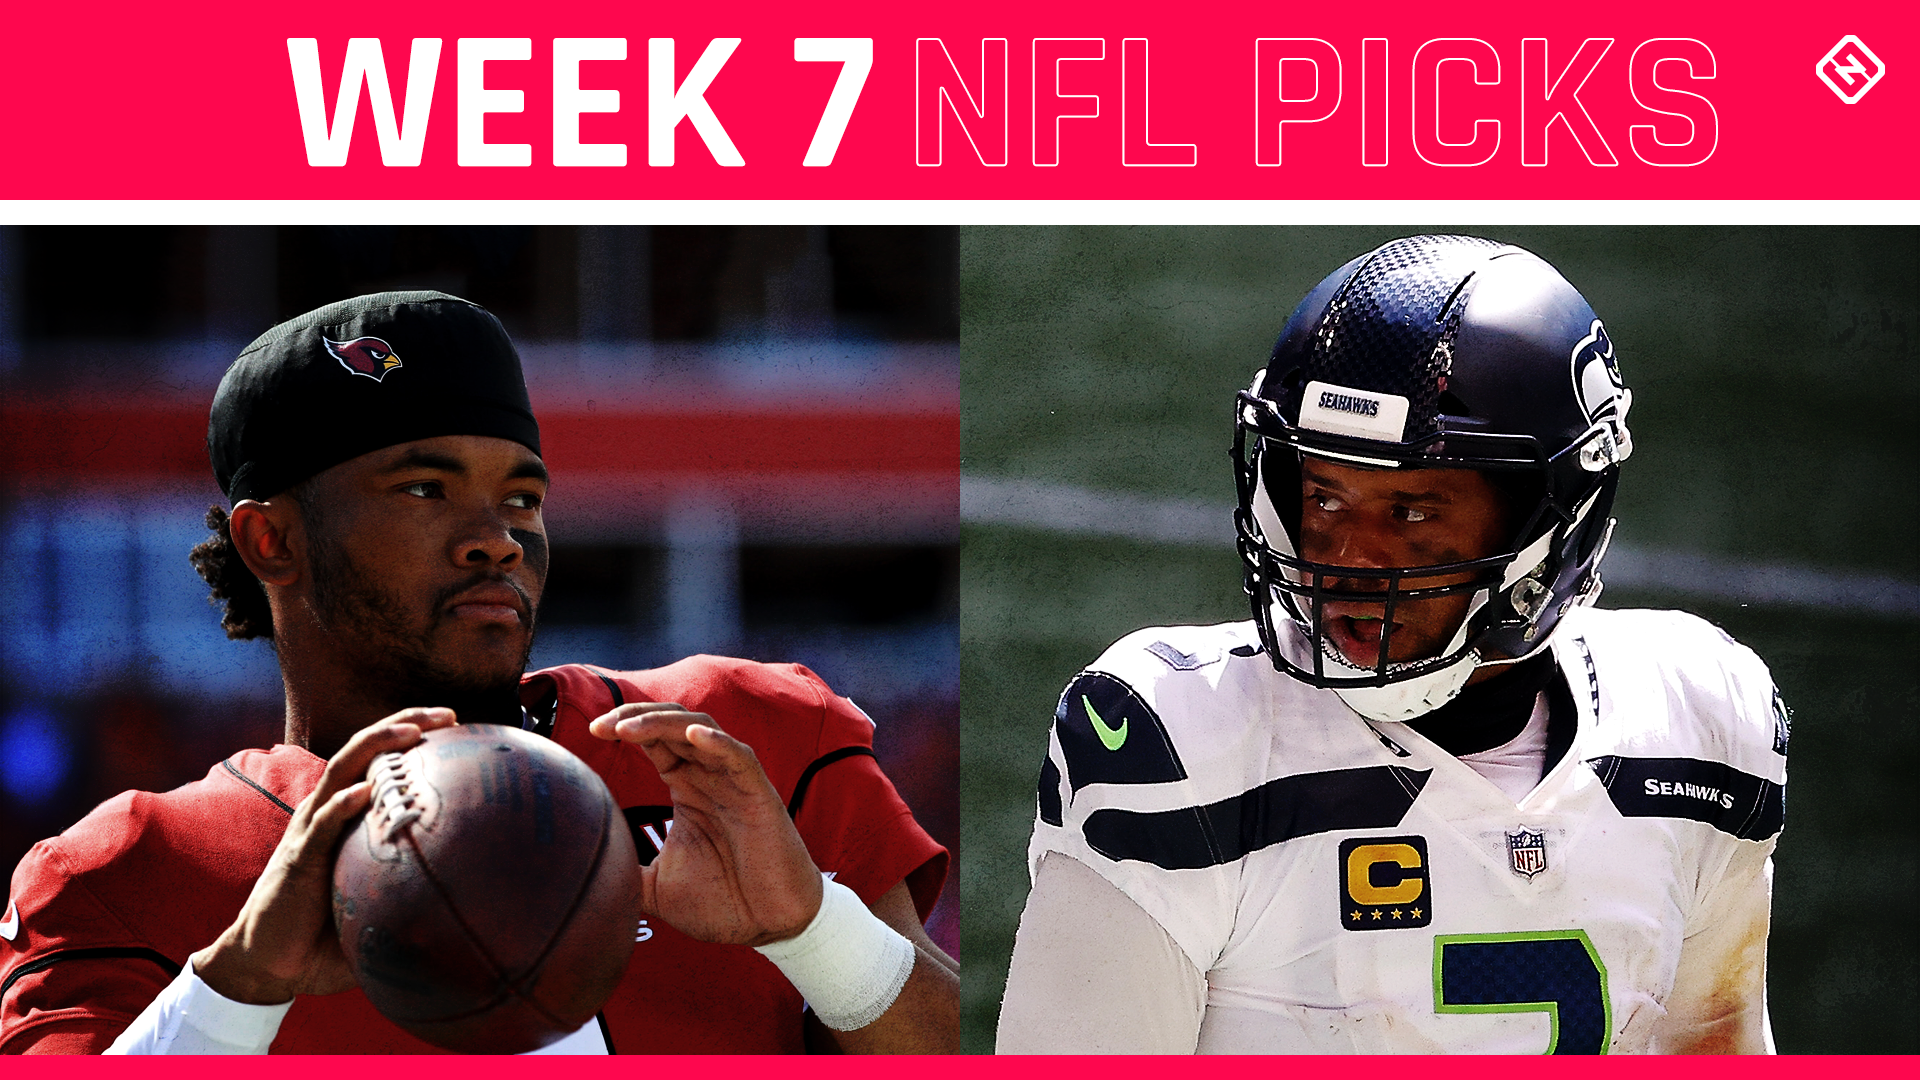 Nfl Picks Predictions For Week 7 Seahawks Silence Cardinals Titans Edge Steelers Bears Stay Hot Sporting News